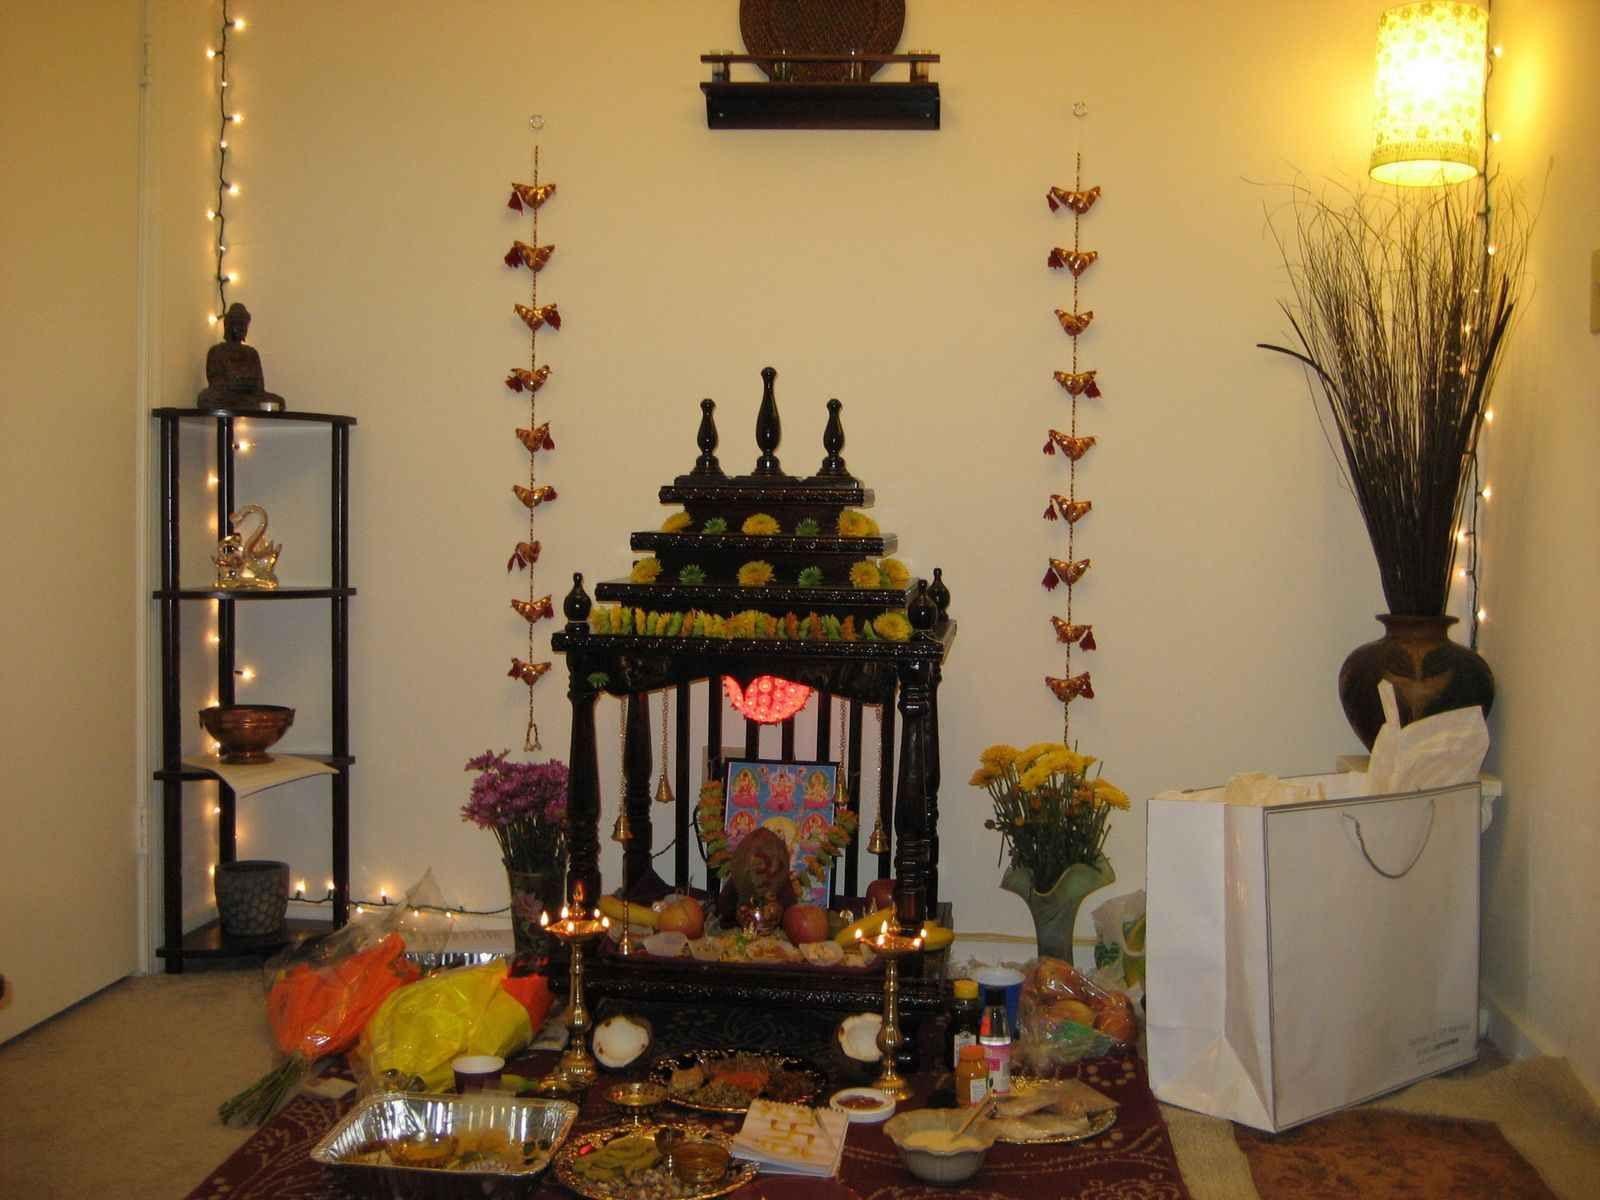 Puja room design home mandir lamps doors vastu idols for Simple diwali home decorations